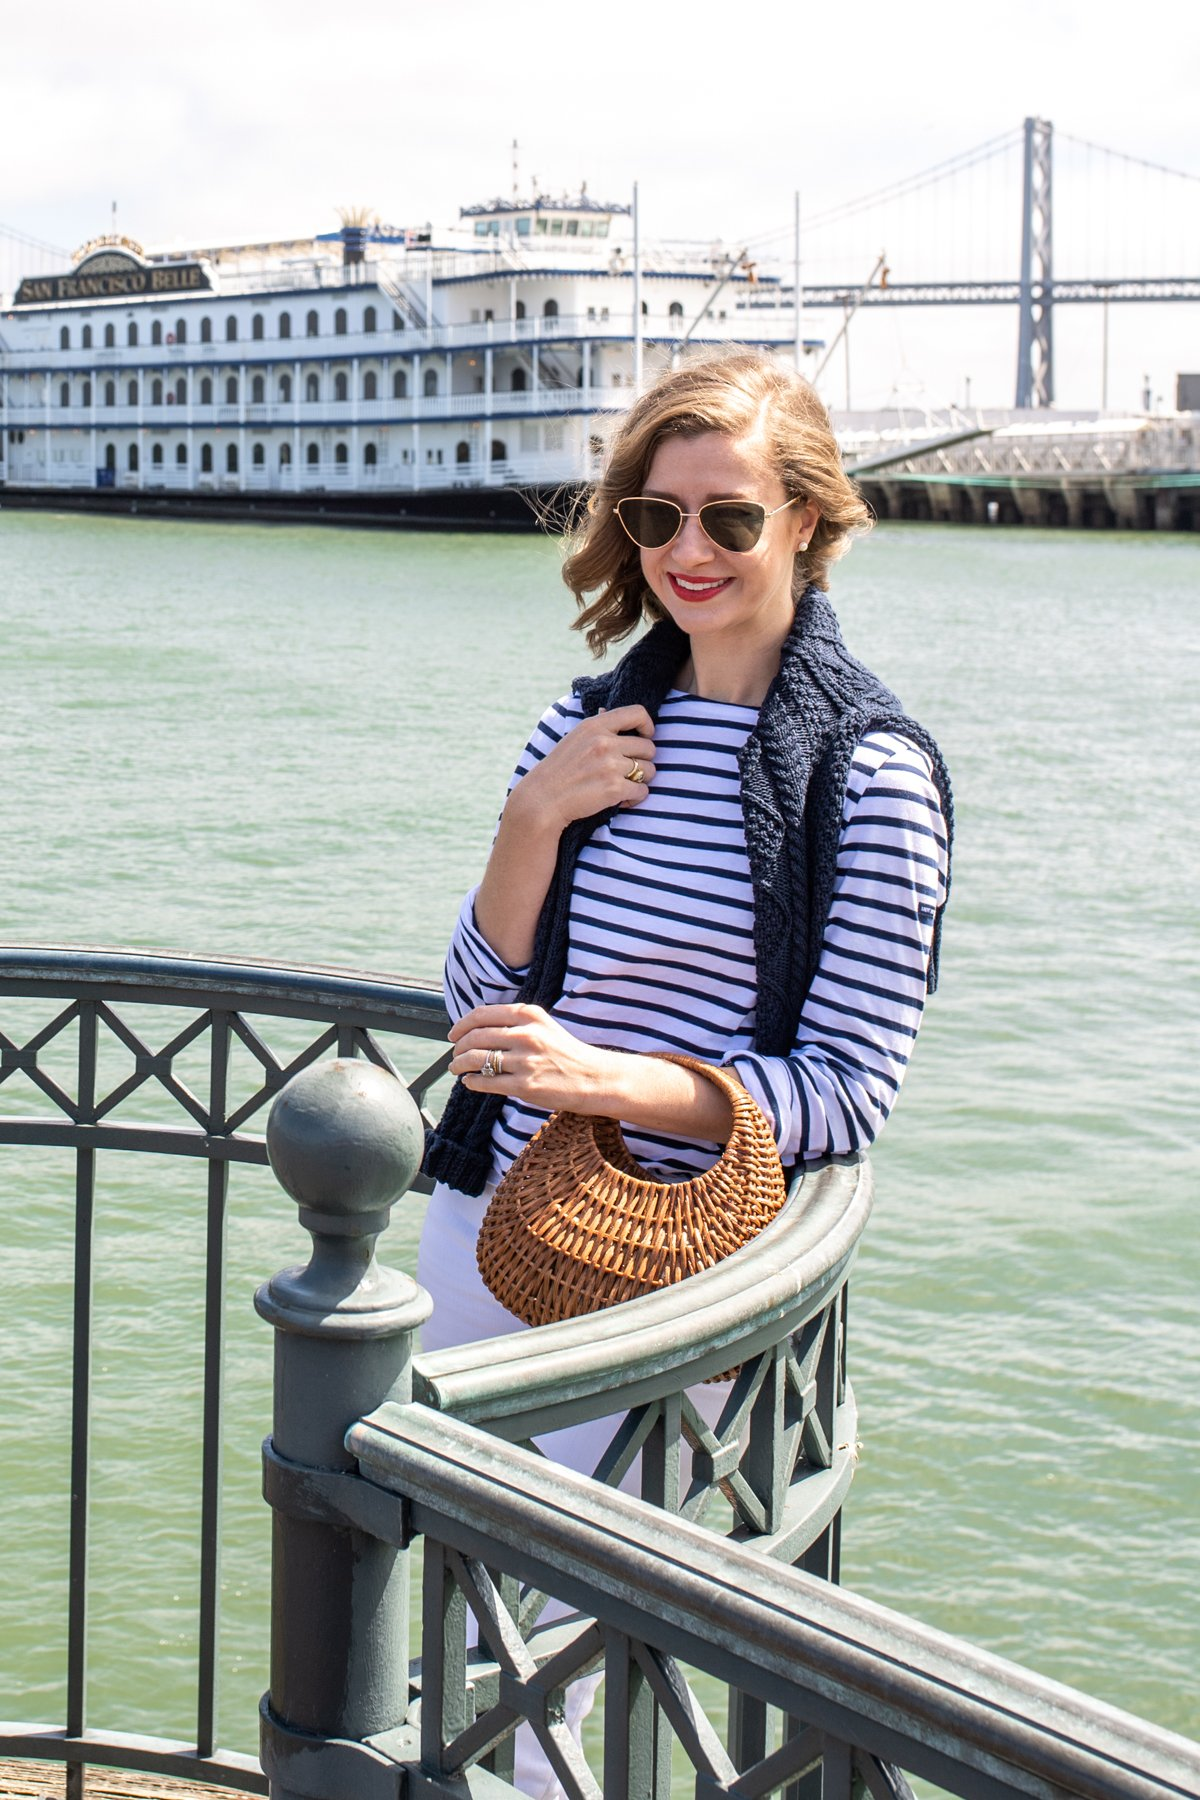 Saint James Sailor Shirt Stacie Flinner-12.jpg